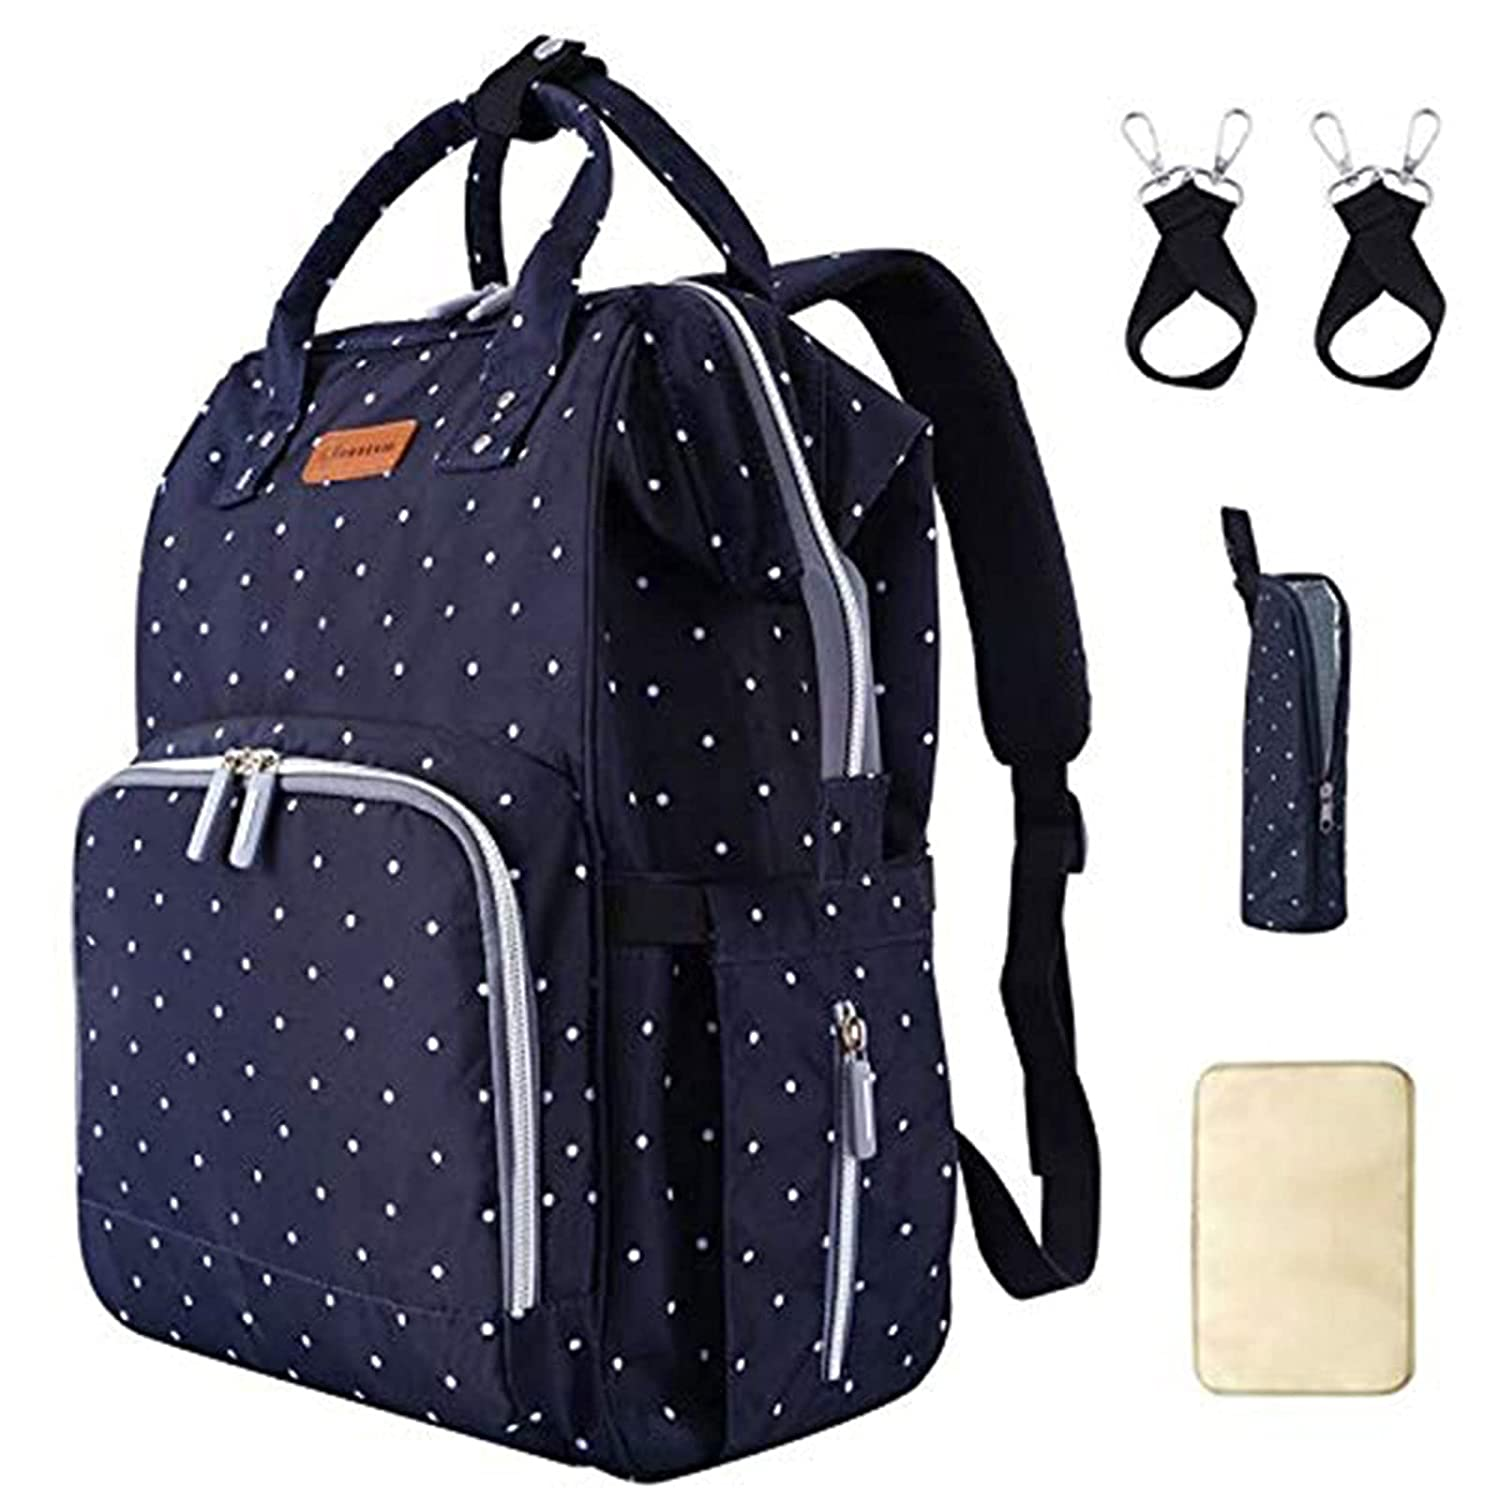 Fashion Maternity Waterproof Max 48% OFF Diaper Bag Capa Backpack Baby Large Houston Mall